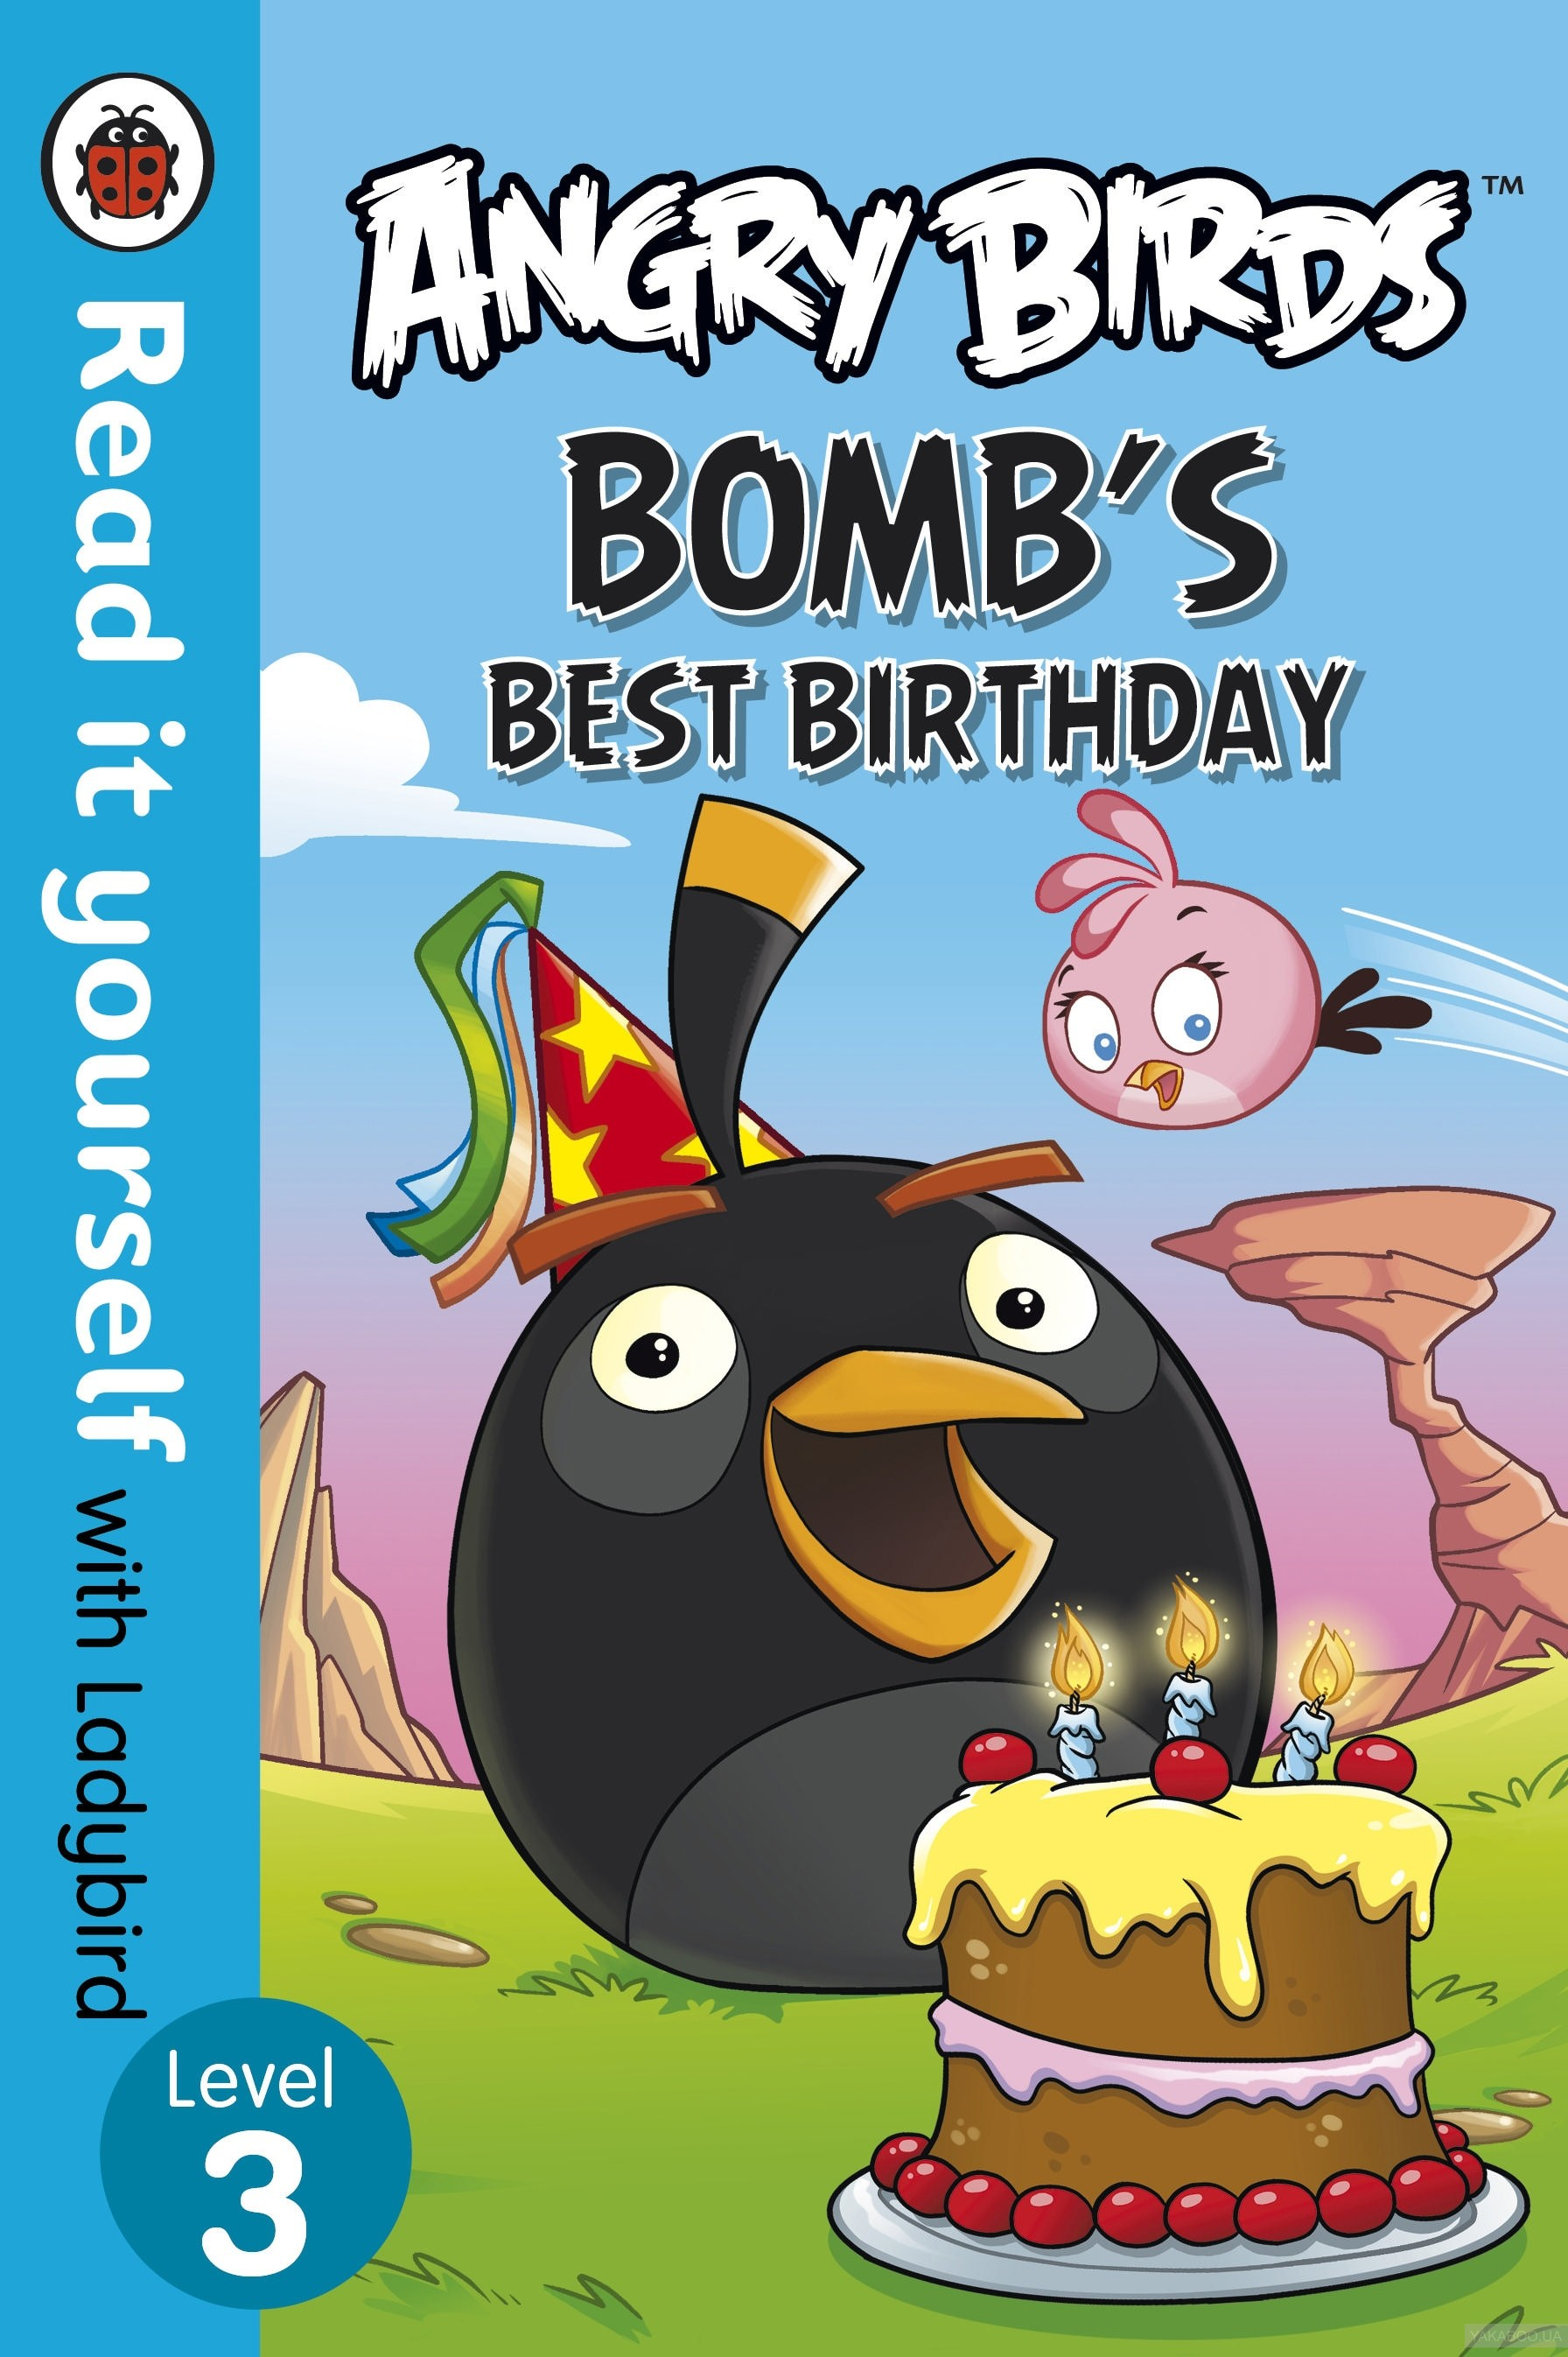 Angry Birds. Bombs Best Birthday